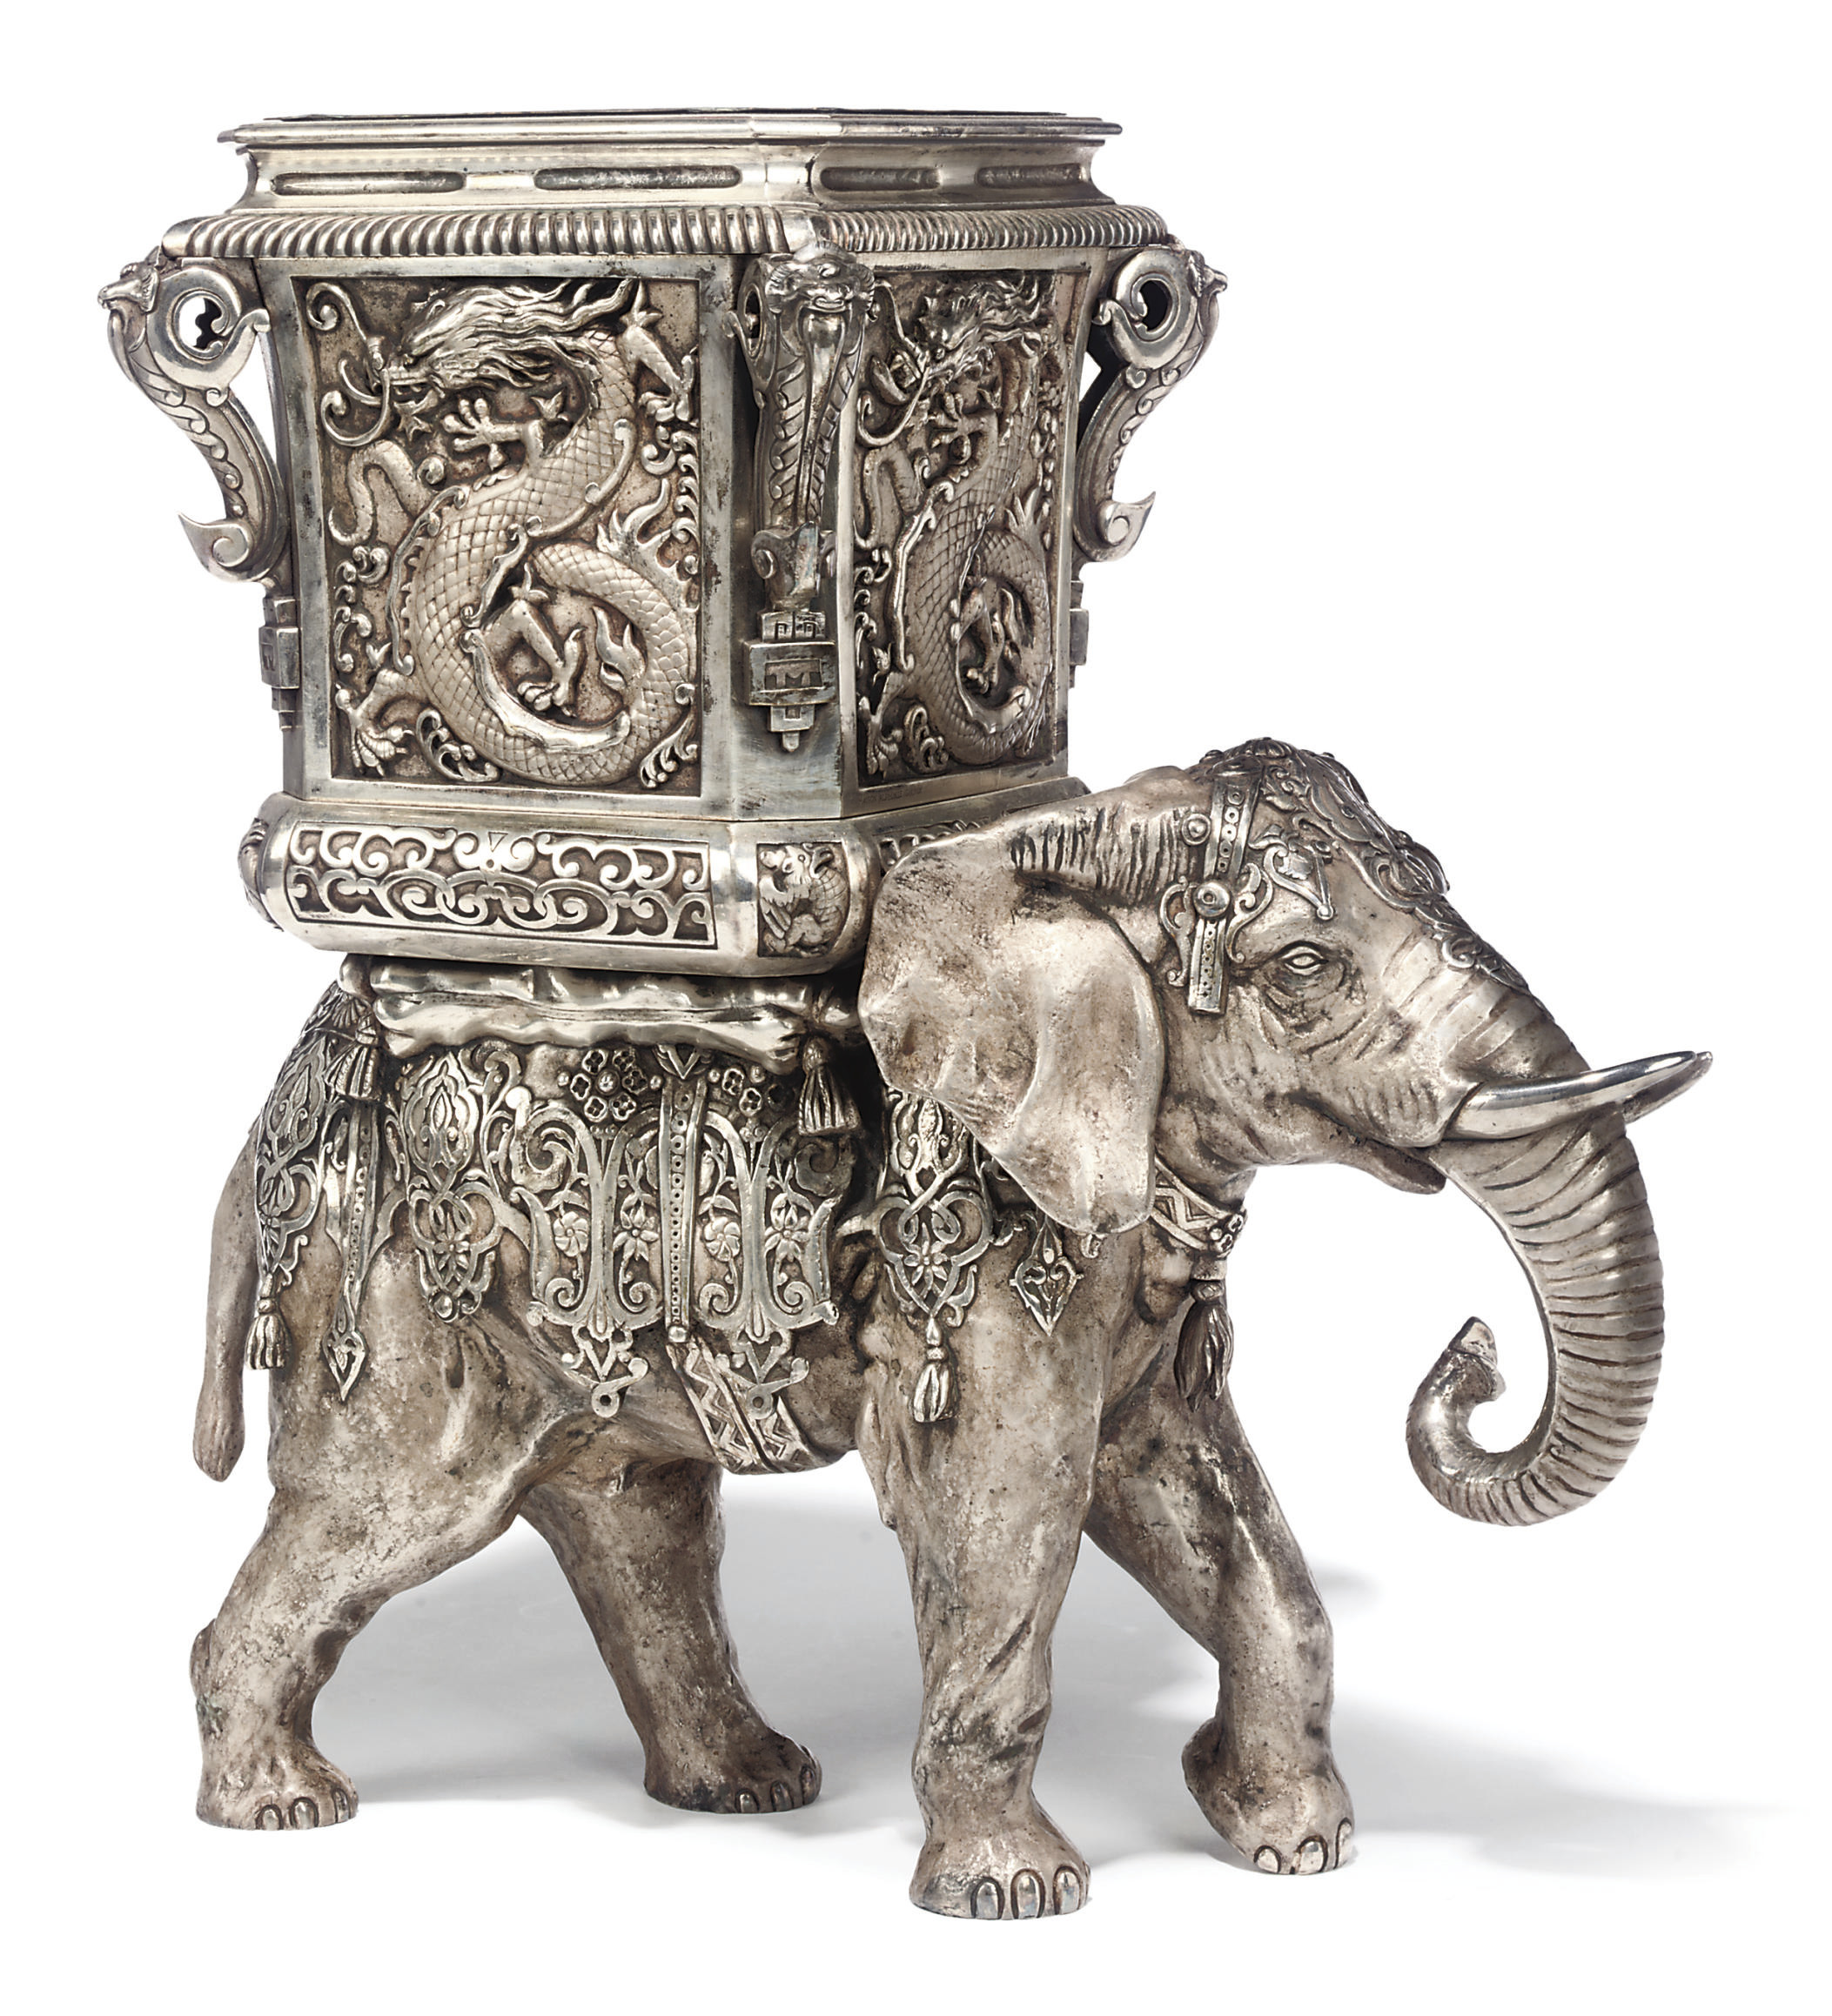 A NAPOLEON III SILVERED BRONZE AND ELECTRO-PLATED JARDINIERE